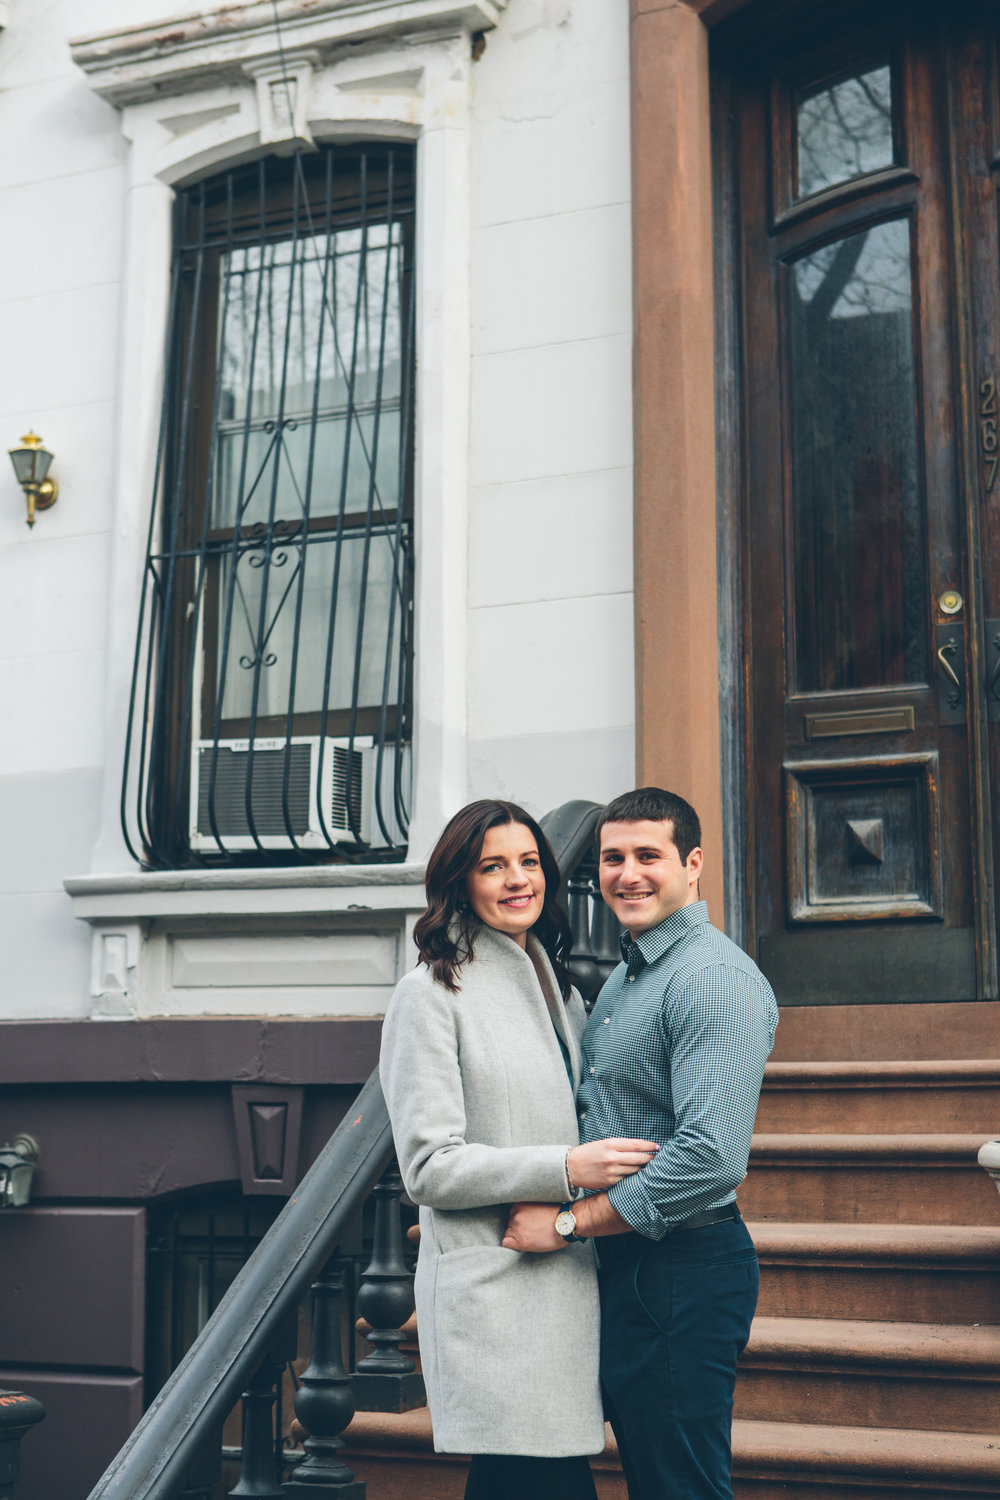 VICTORIA-BRIAN-BROOKLYN-NYC-ENGAGEMENT-SESSION-CYNTHIACHUNG-0021.jpg